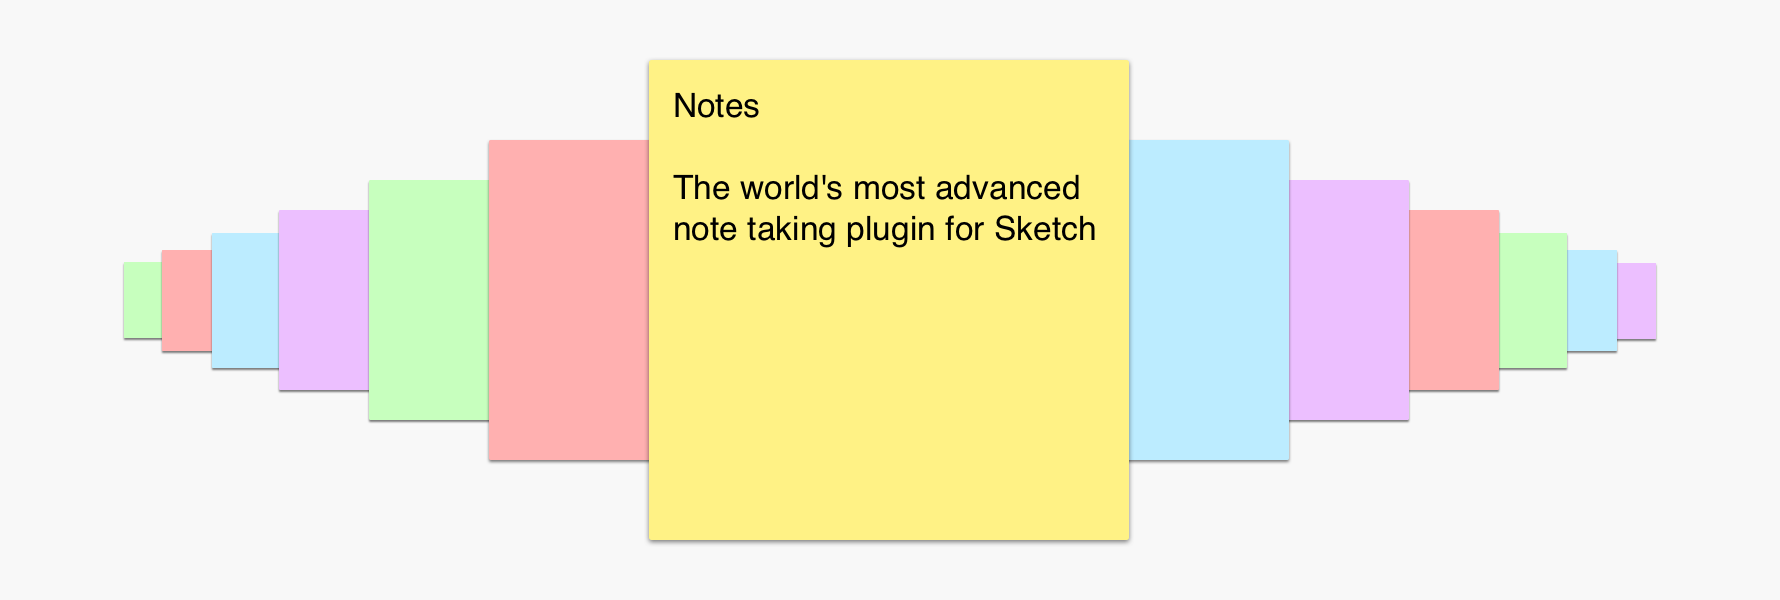 The world's most advanced note taking plugin for Sketch.